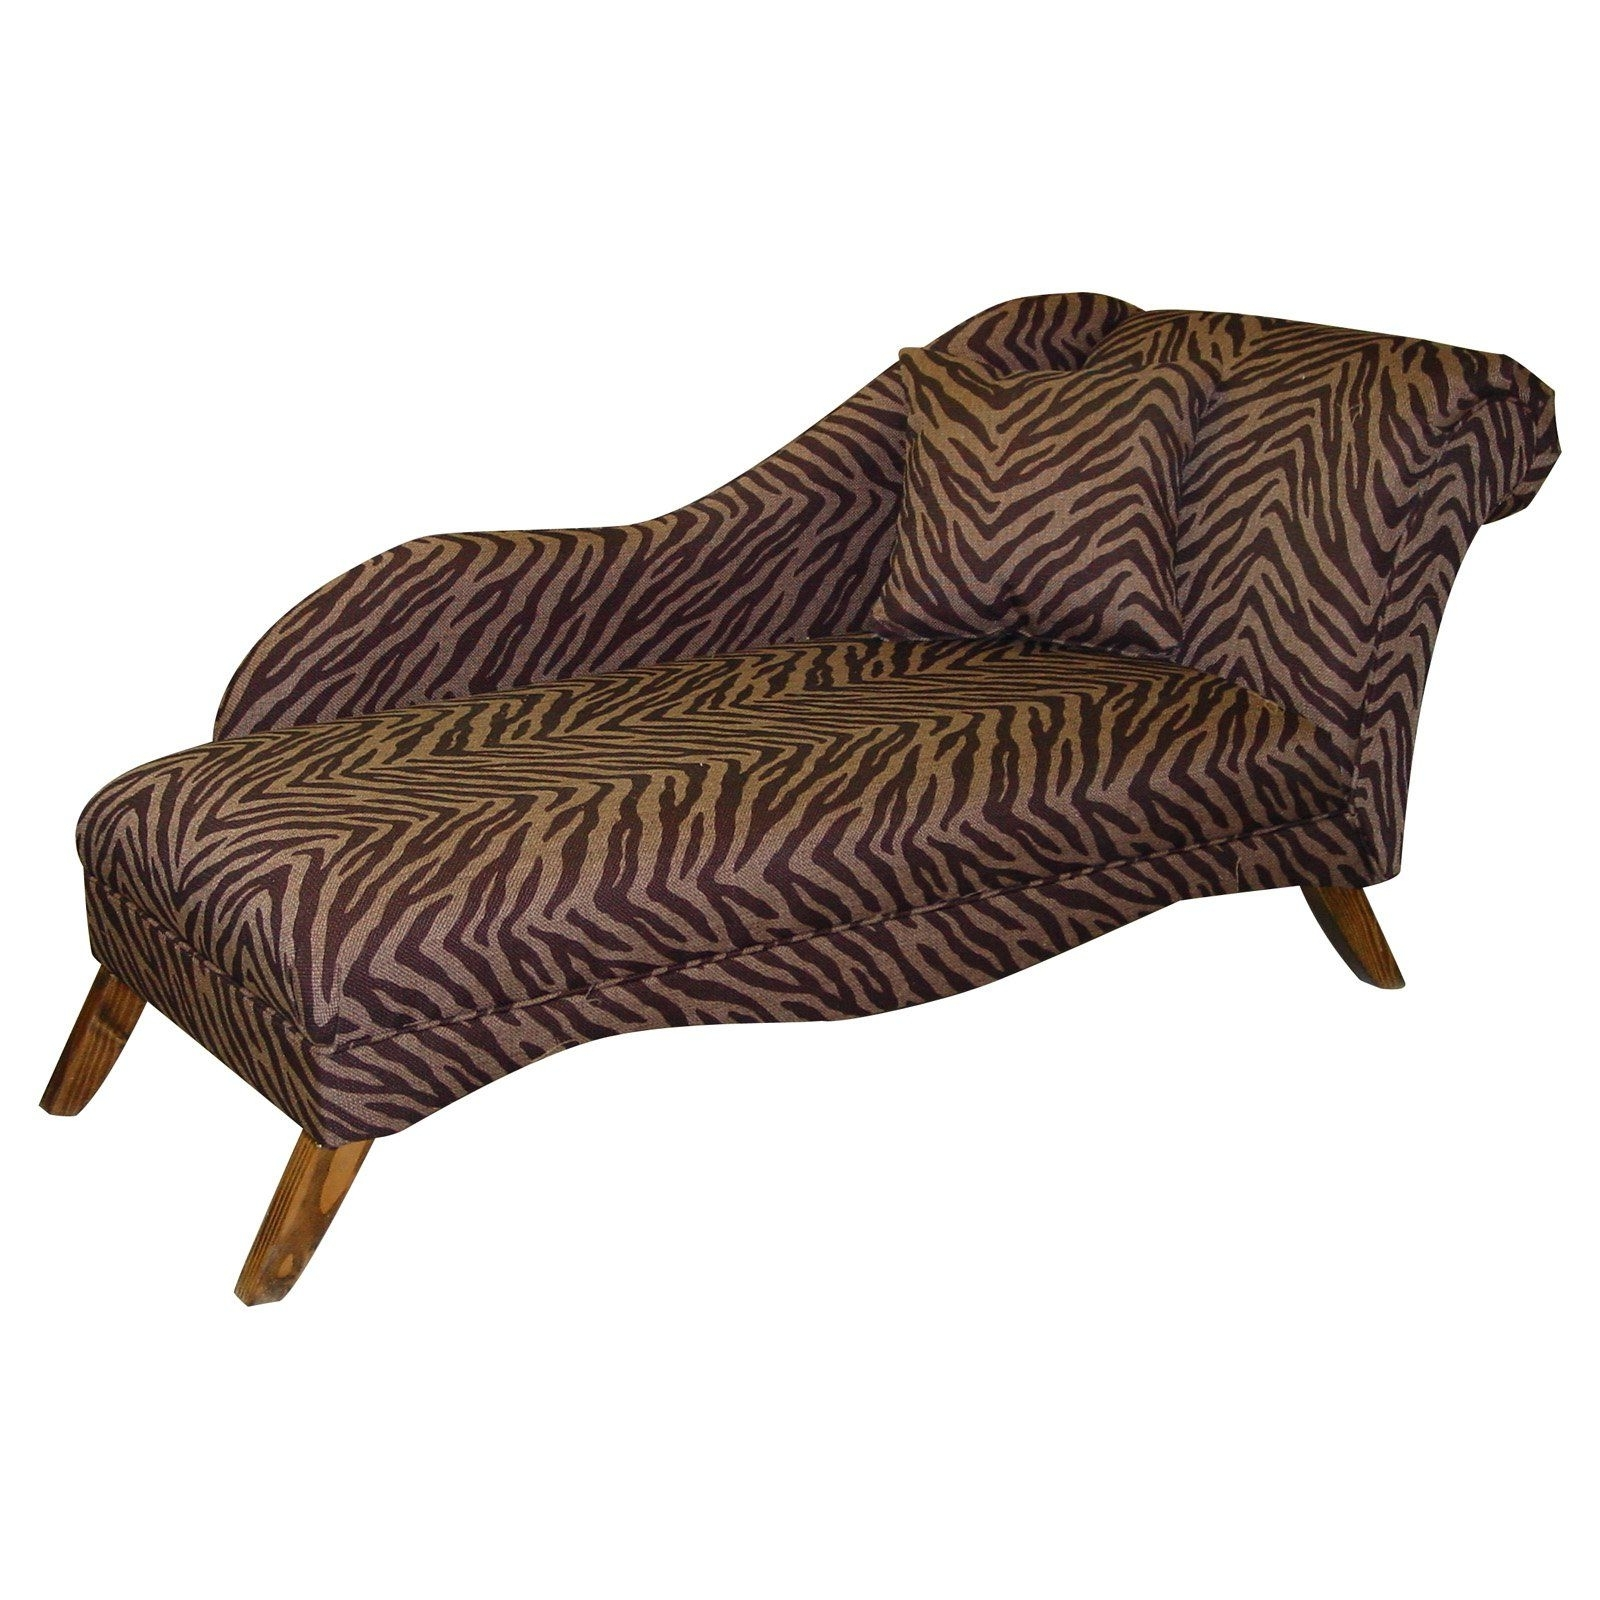 Unbelievable Leopard Chaise Lounge With Image For Animal Print in Famous Leopard Chaise Lounges